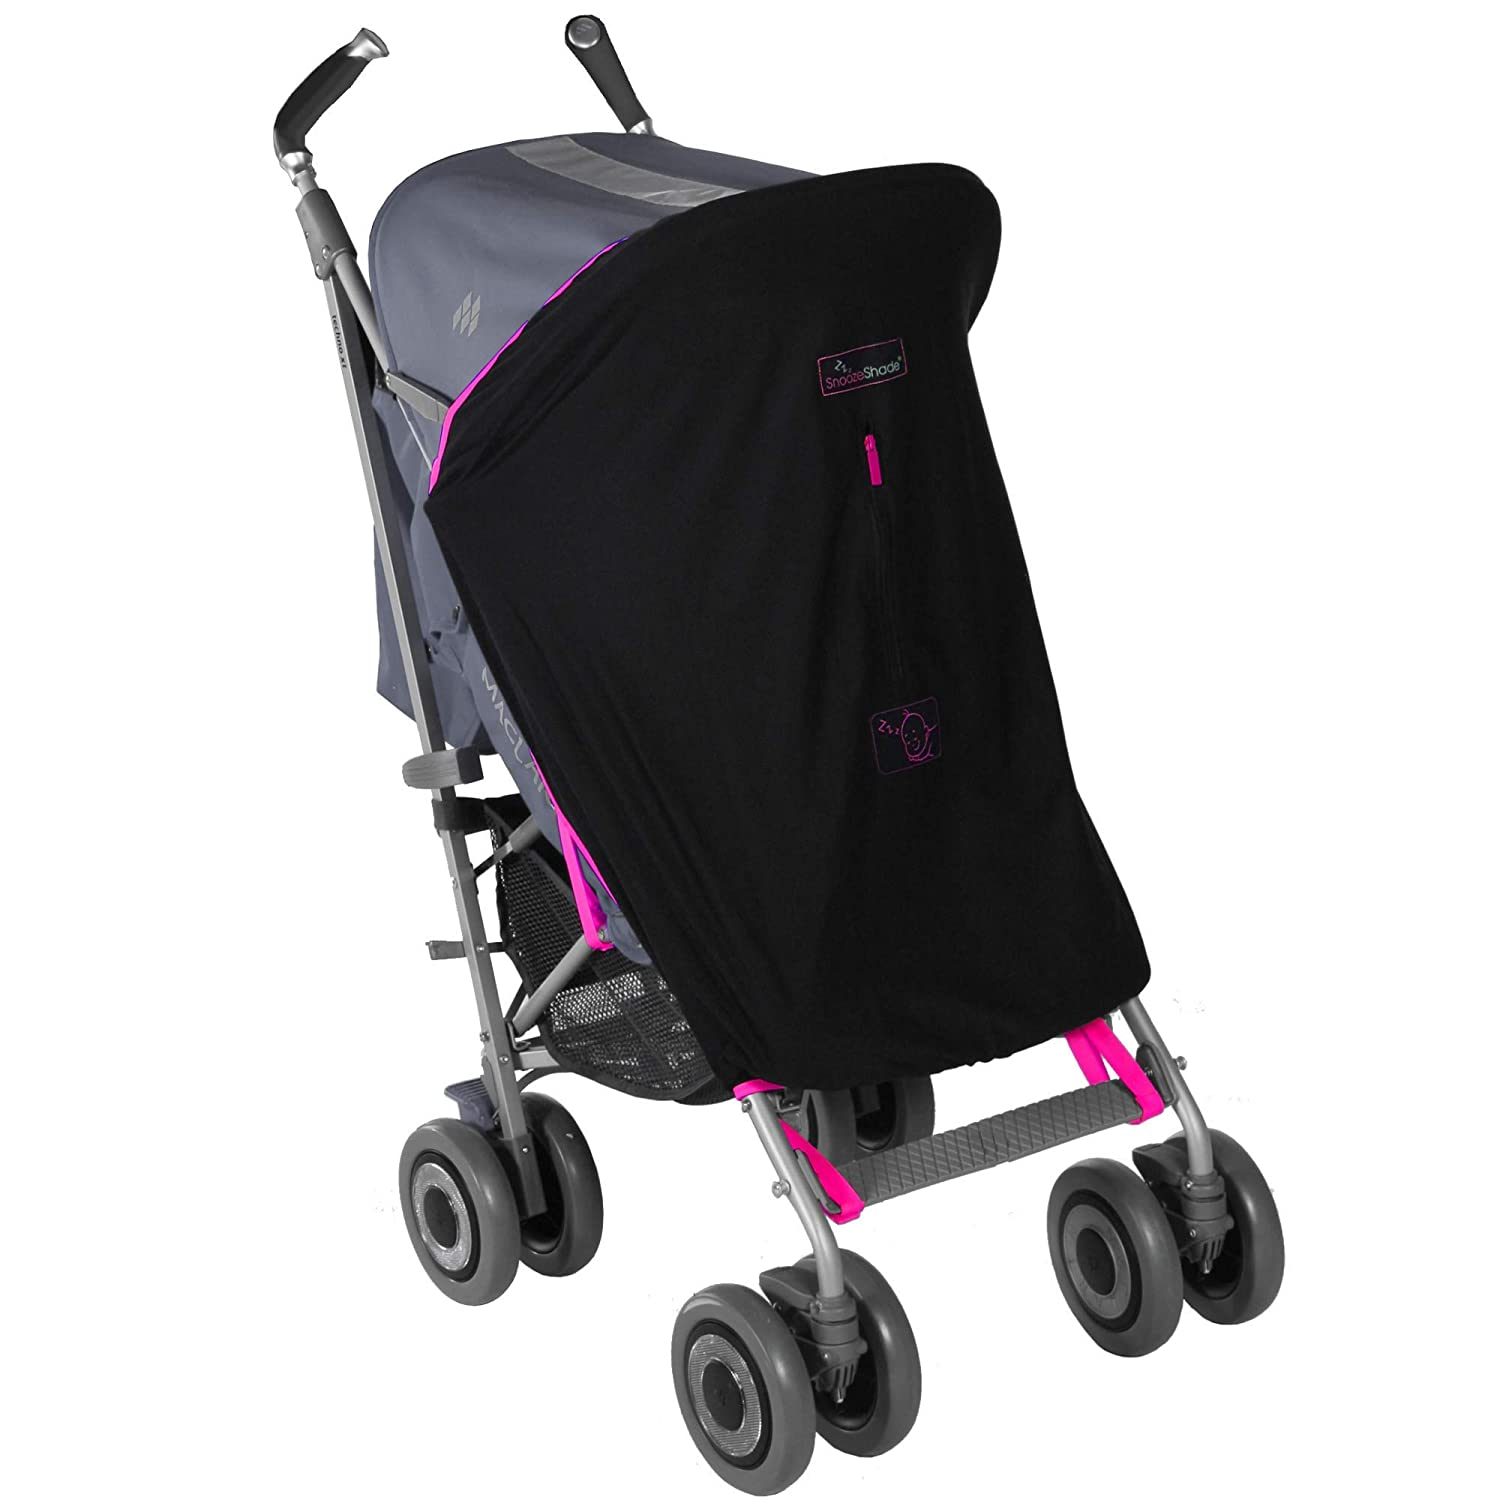 B006HG6R8K Stroller Sun Cover (0-6m) | Baby Sun Shade and Blackout Blind for Strollers | Stops 99% of The Sun's Rays (UPF50+) | Breathable and Universal fit | SnoozeShade Original - Limited Edition Pink Trim 71-QnSQJm2L